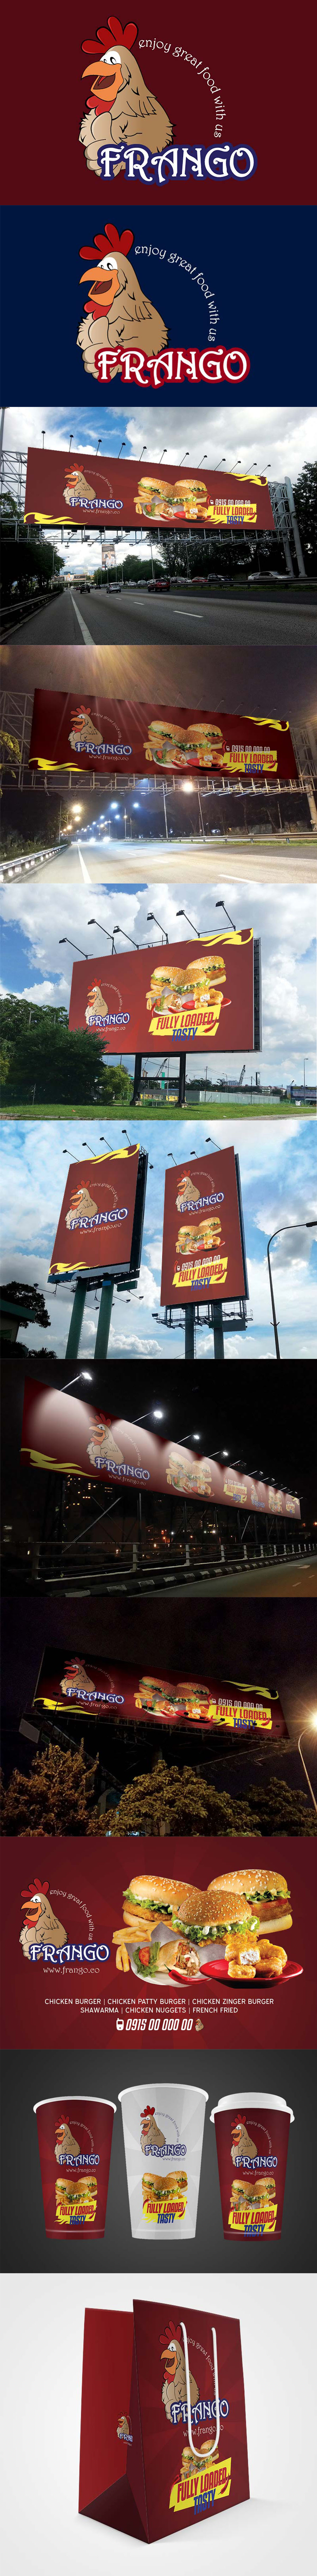 Fast-food-outdoor-campaign